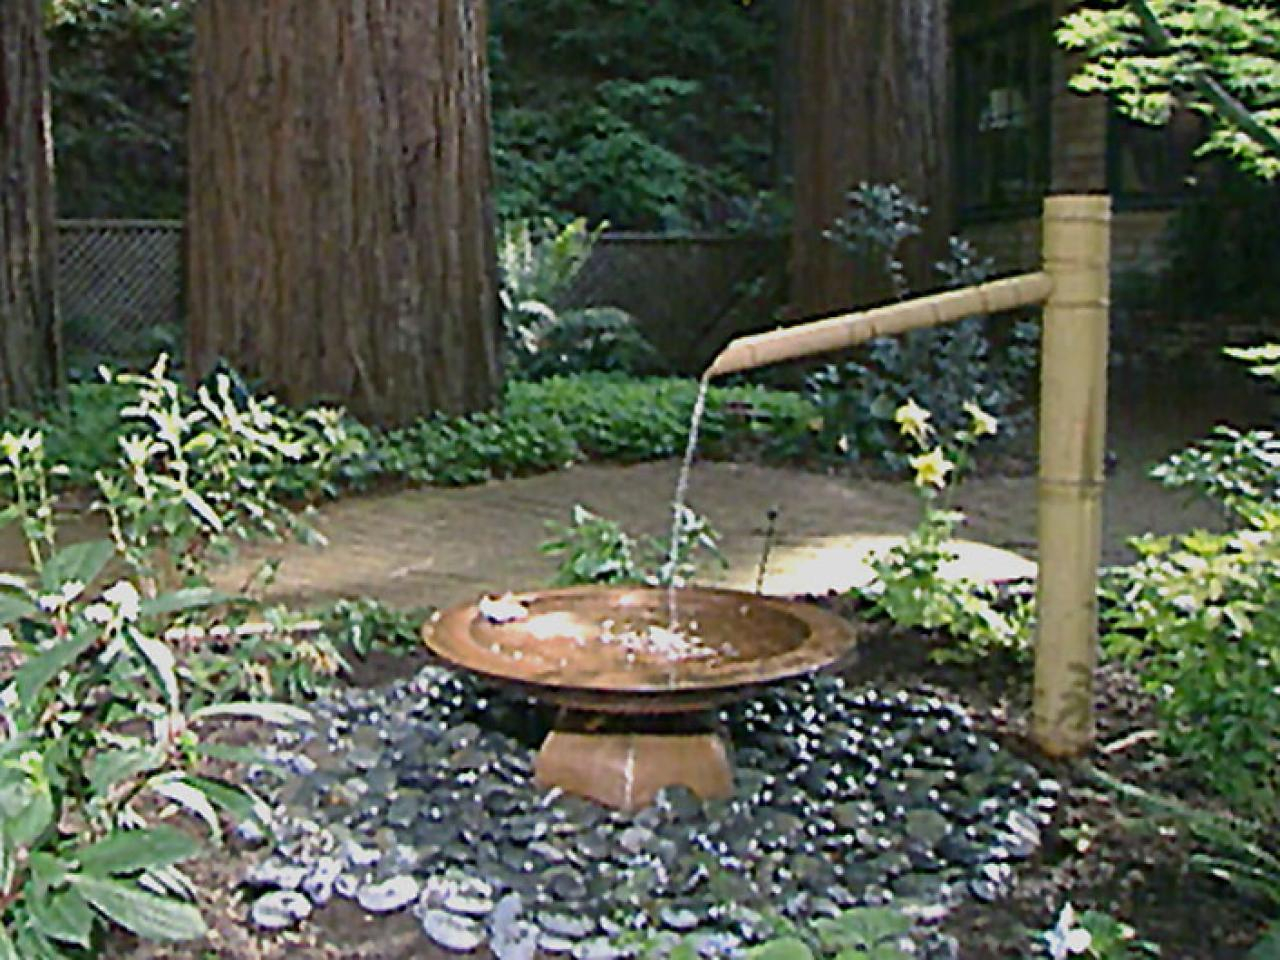 Water Features Any Budget Landscaping Ideas Tierra Este 98955 within Backyard Water Fountains Ideas